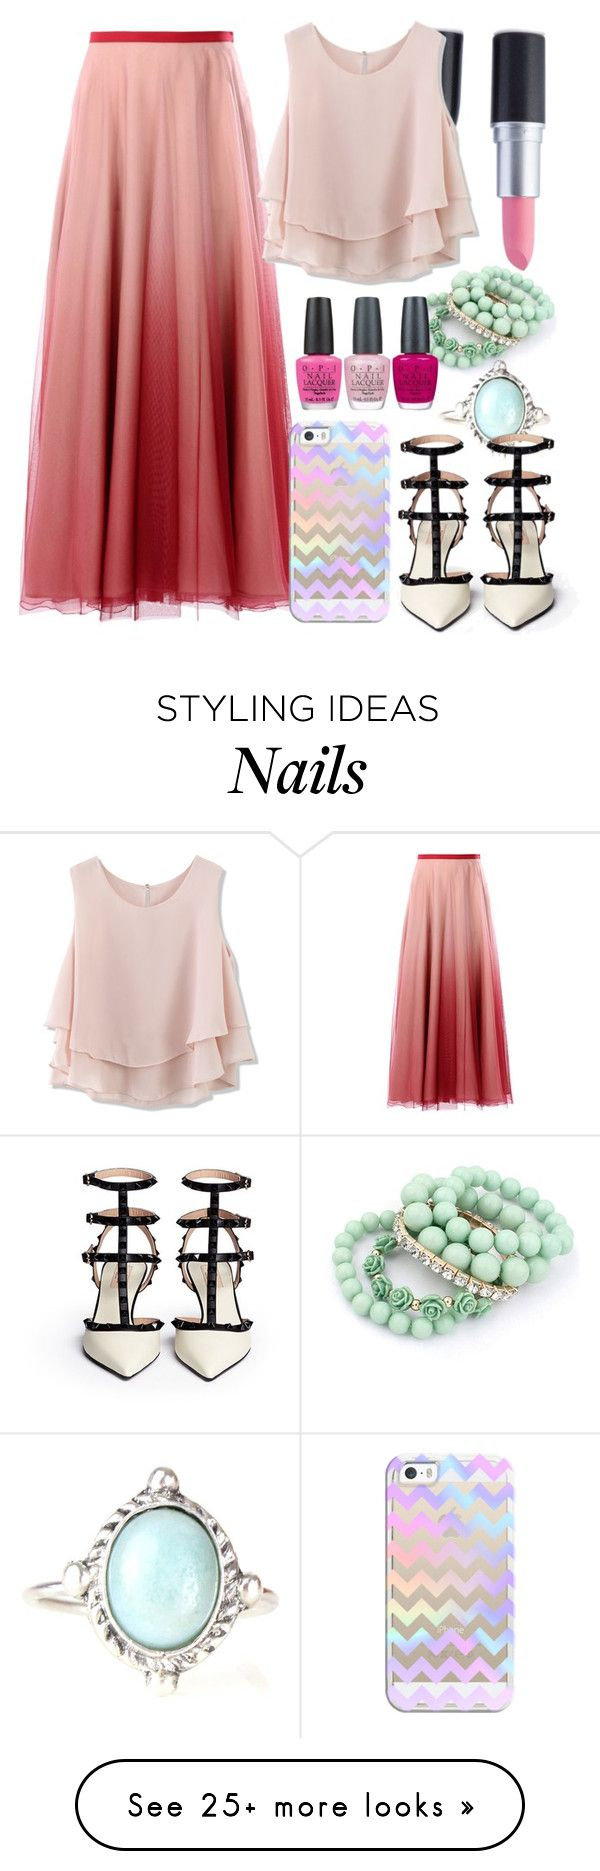 """<3<3<3"" by maiiira-nair on Polyvore featuring RED Valentino, Casetify, Ruby Rocks, Chicwish and OPI"